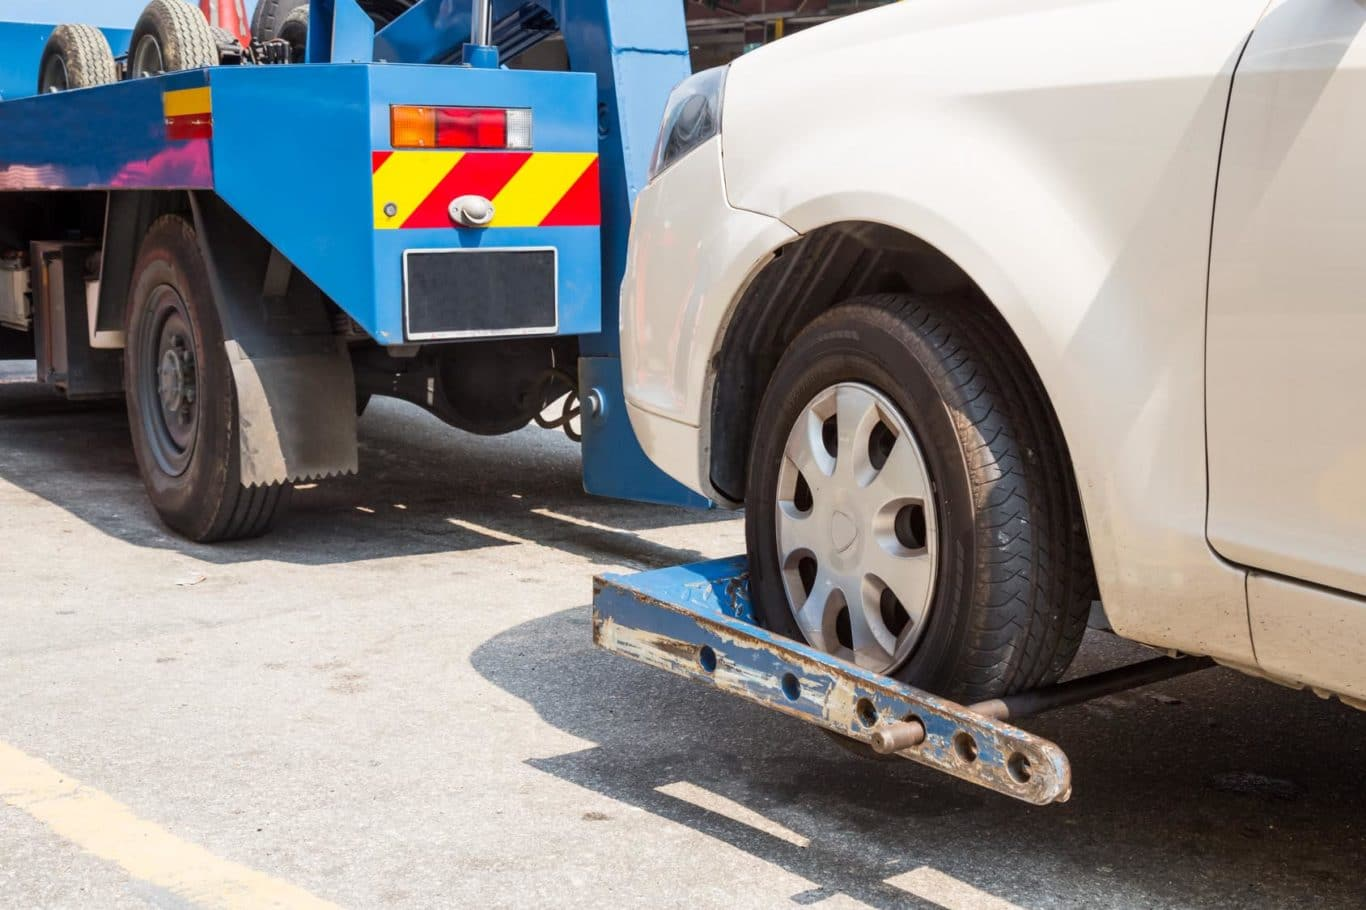 Kilmacud expert Breakdown Assistance services